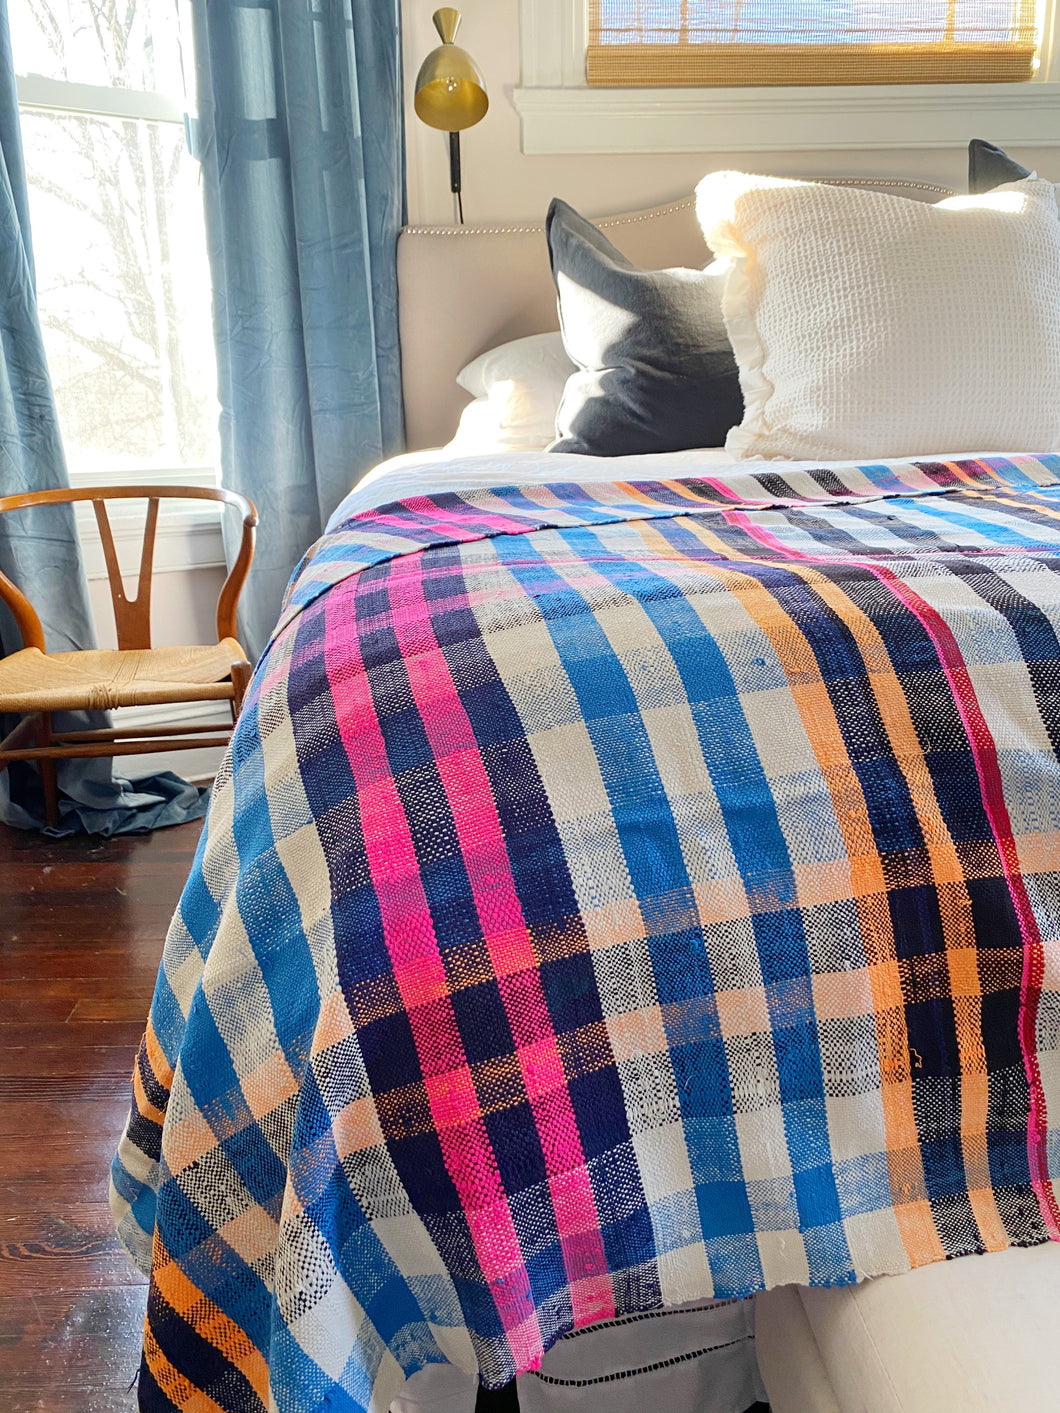 Perfect plaid vintage Berber Moroccan blanket.